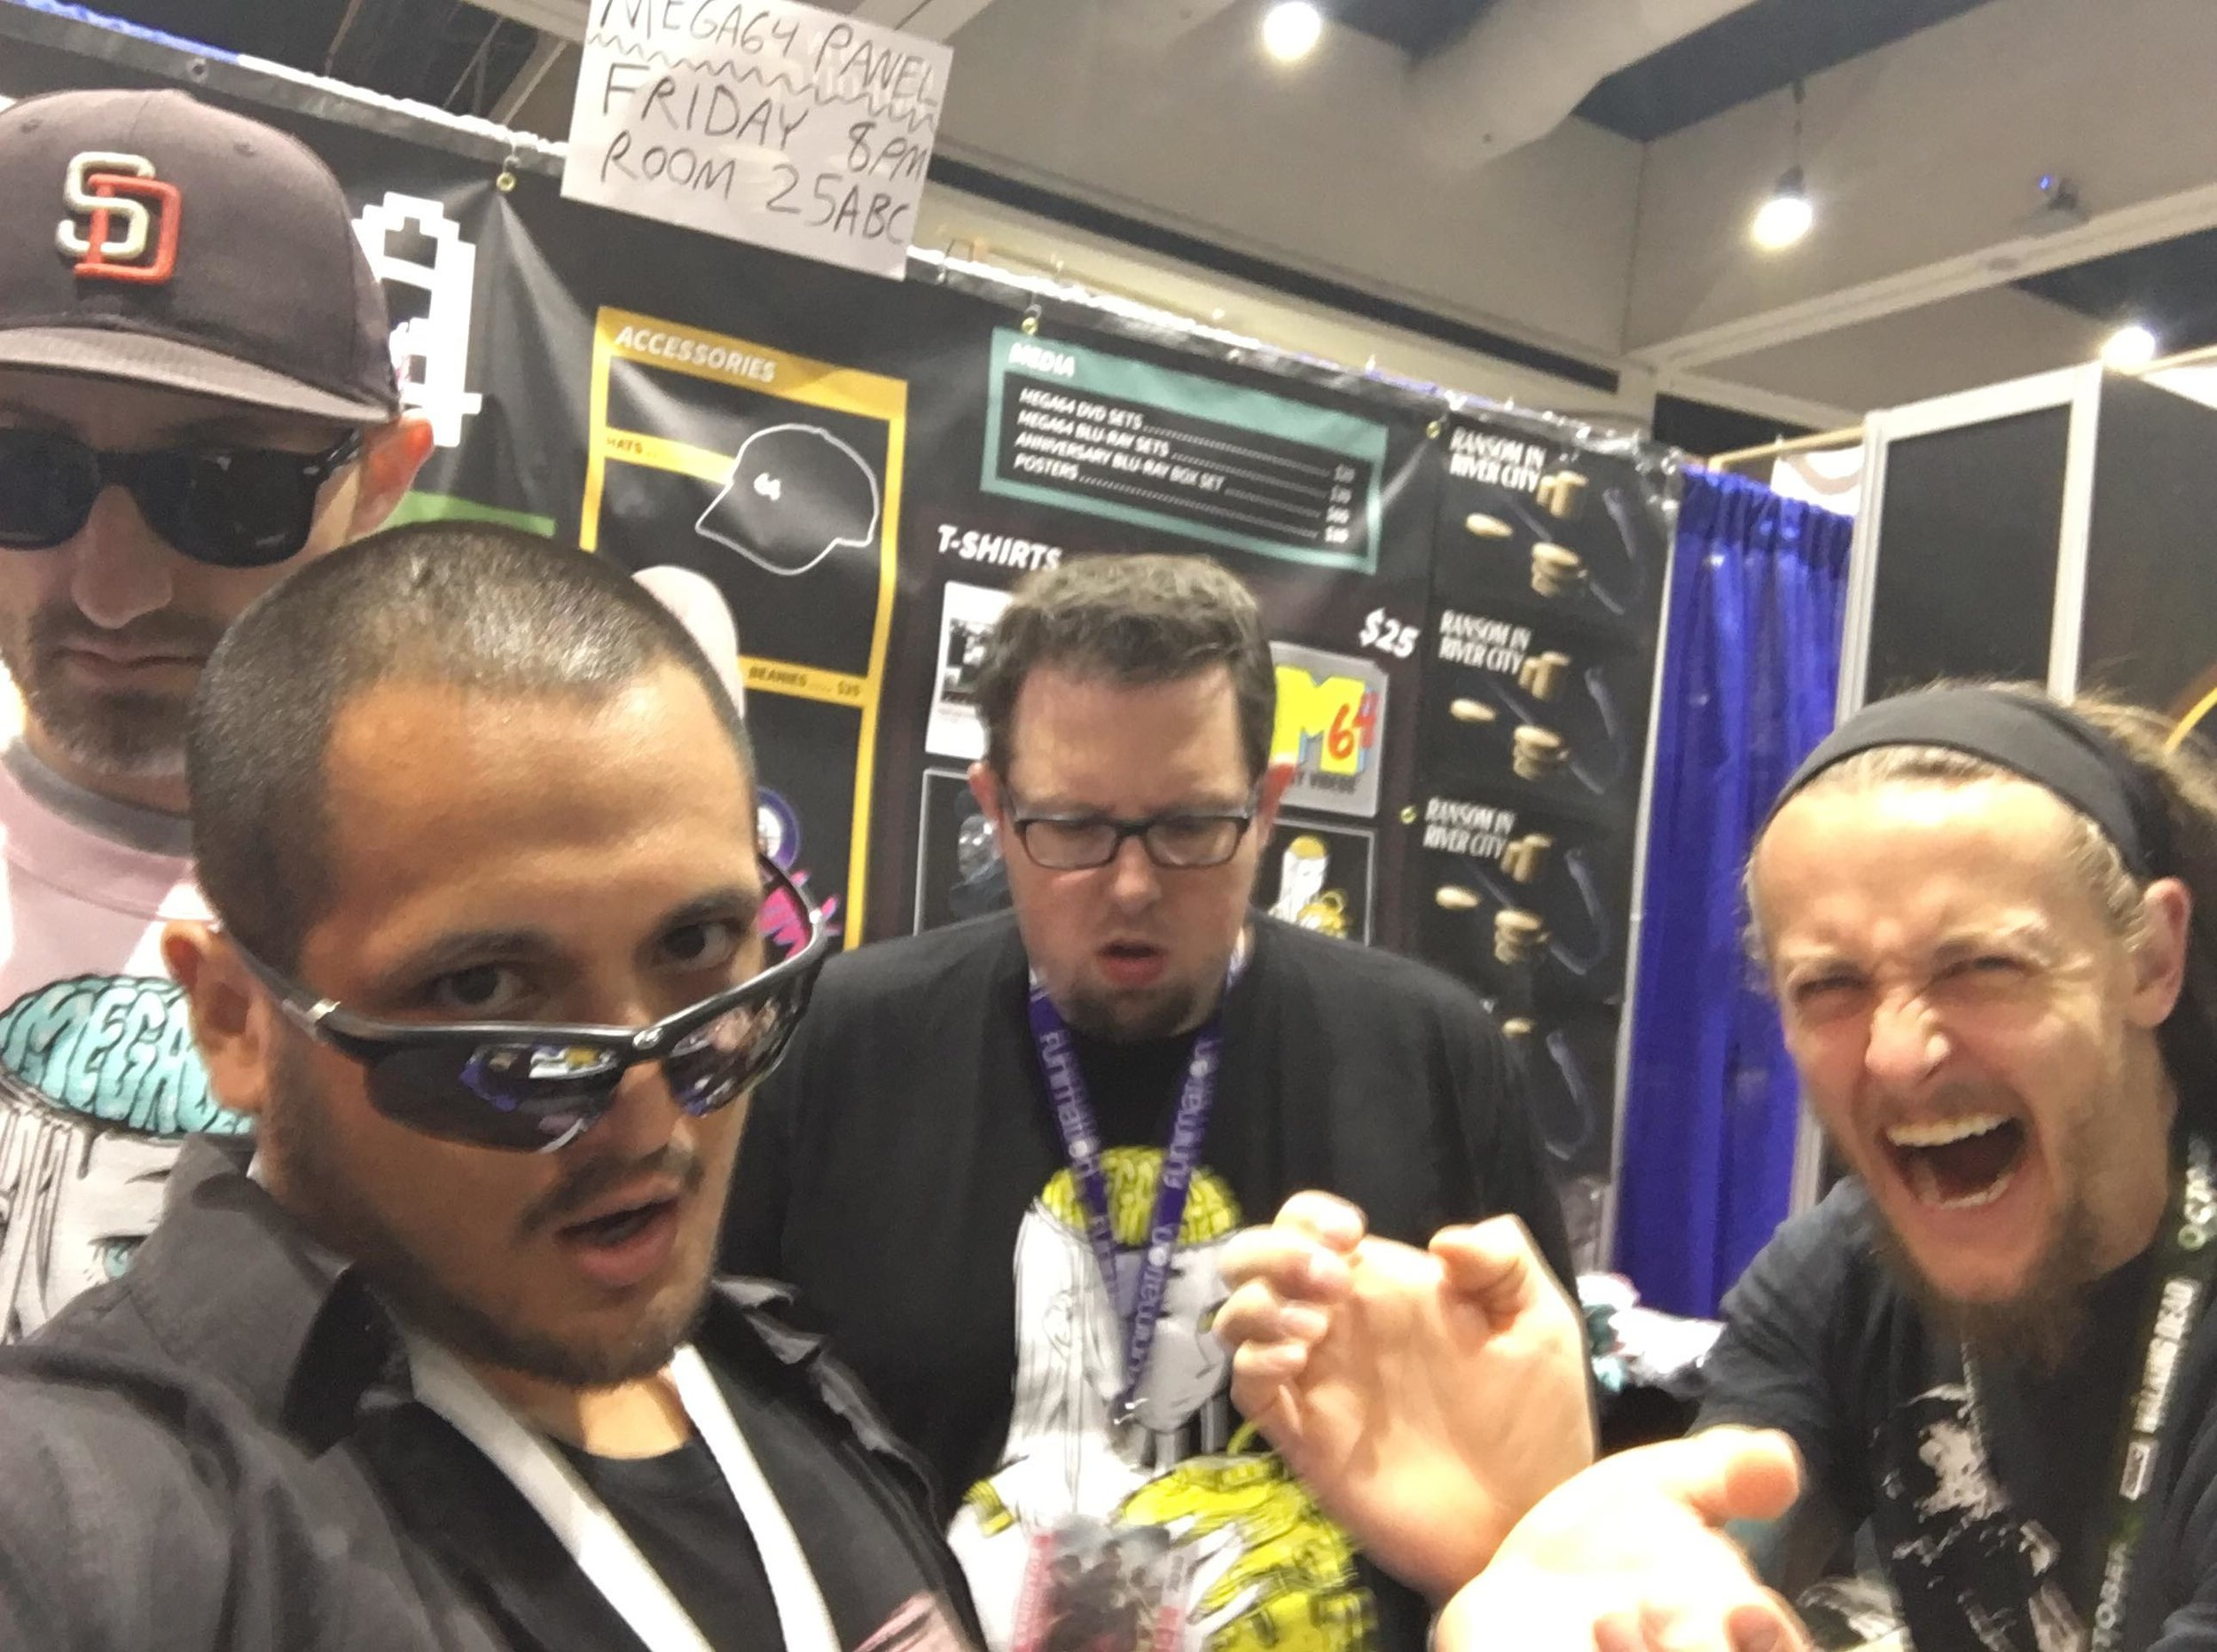 Selfie with Mega64 at San Diego Comic Con.